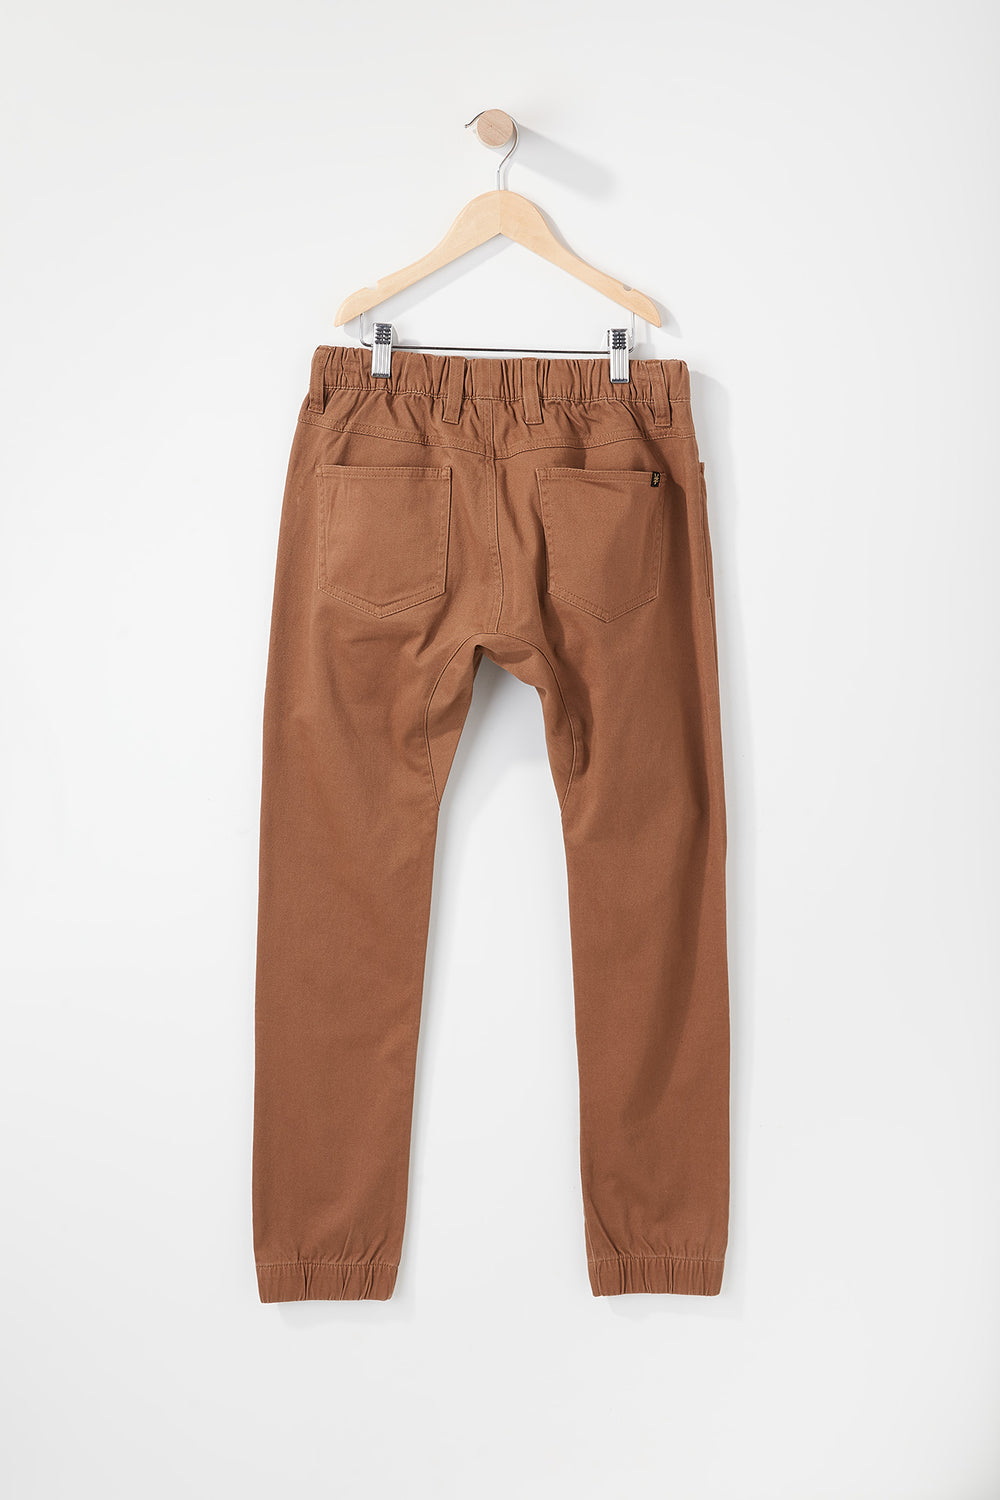 Zoo York Boys 5-Pocket Jogger Tan